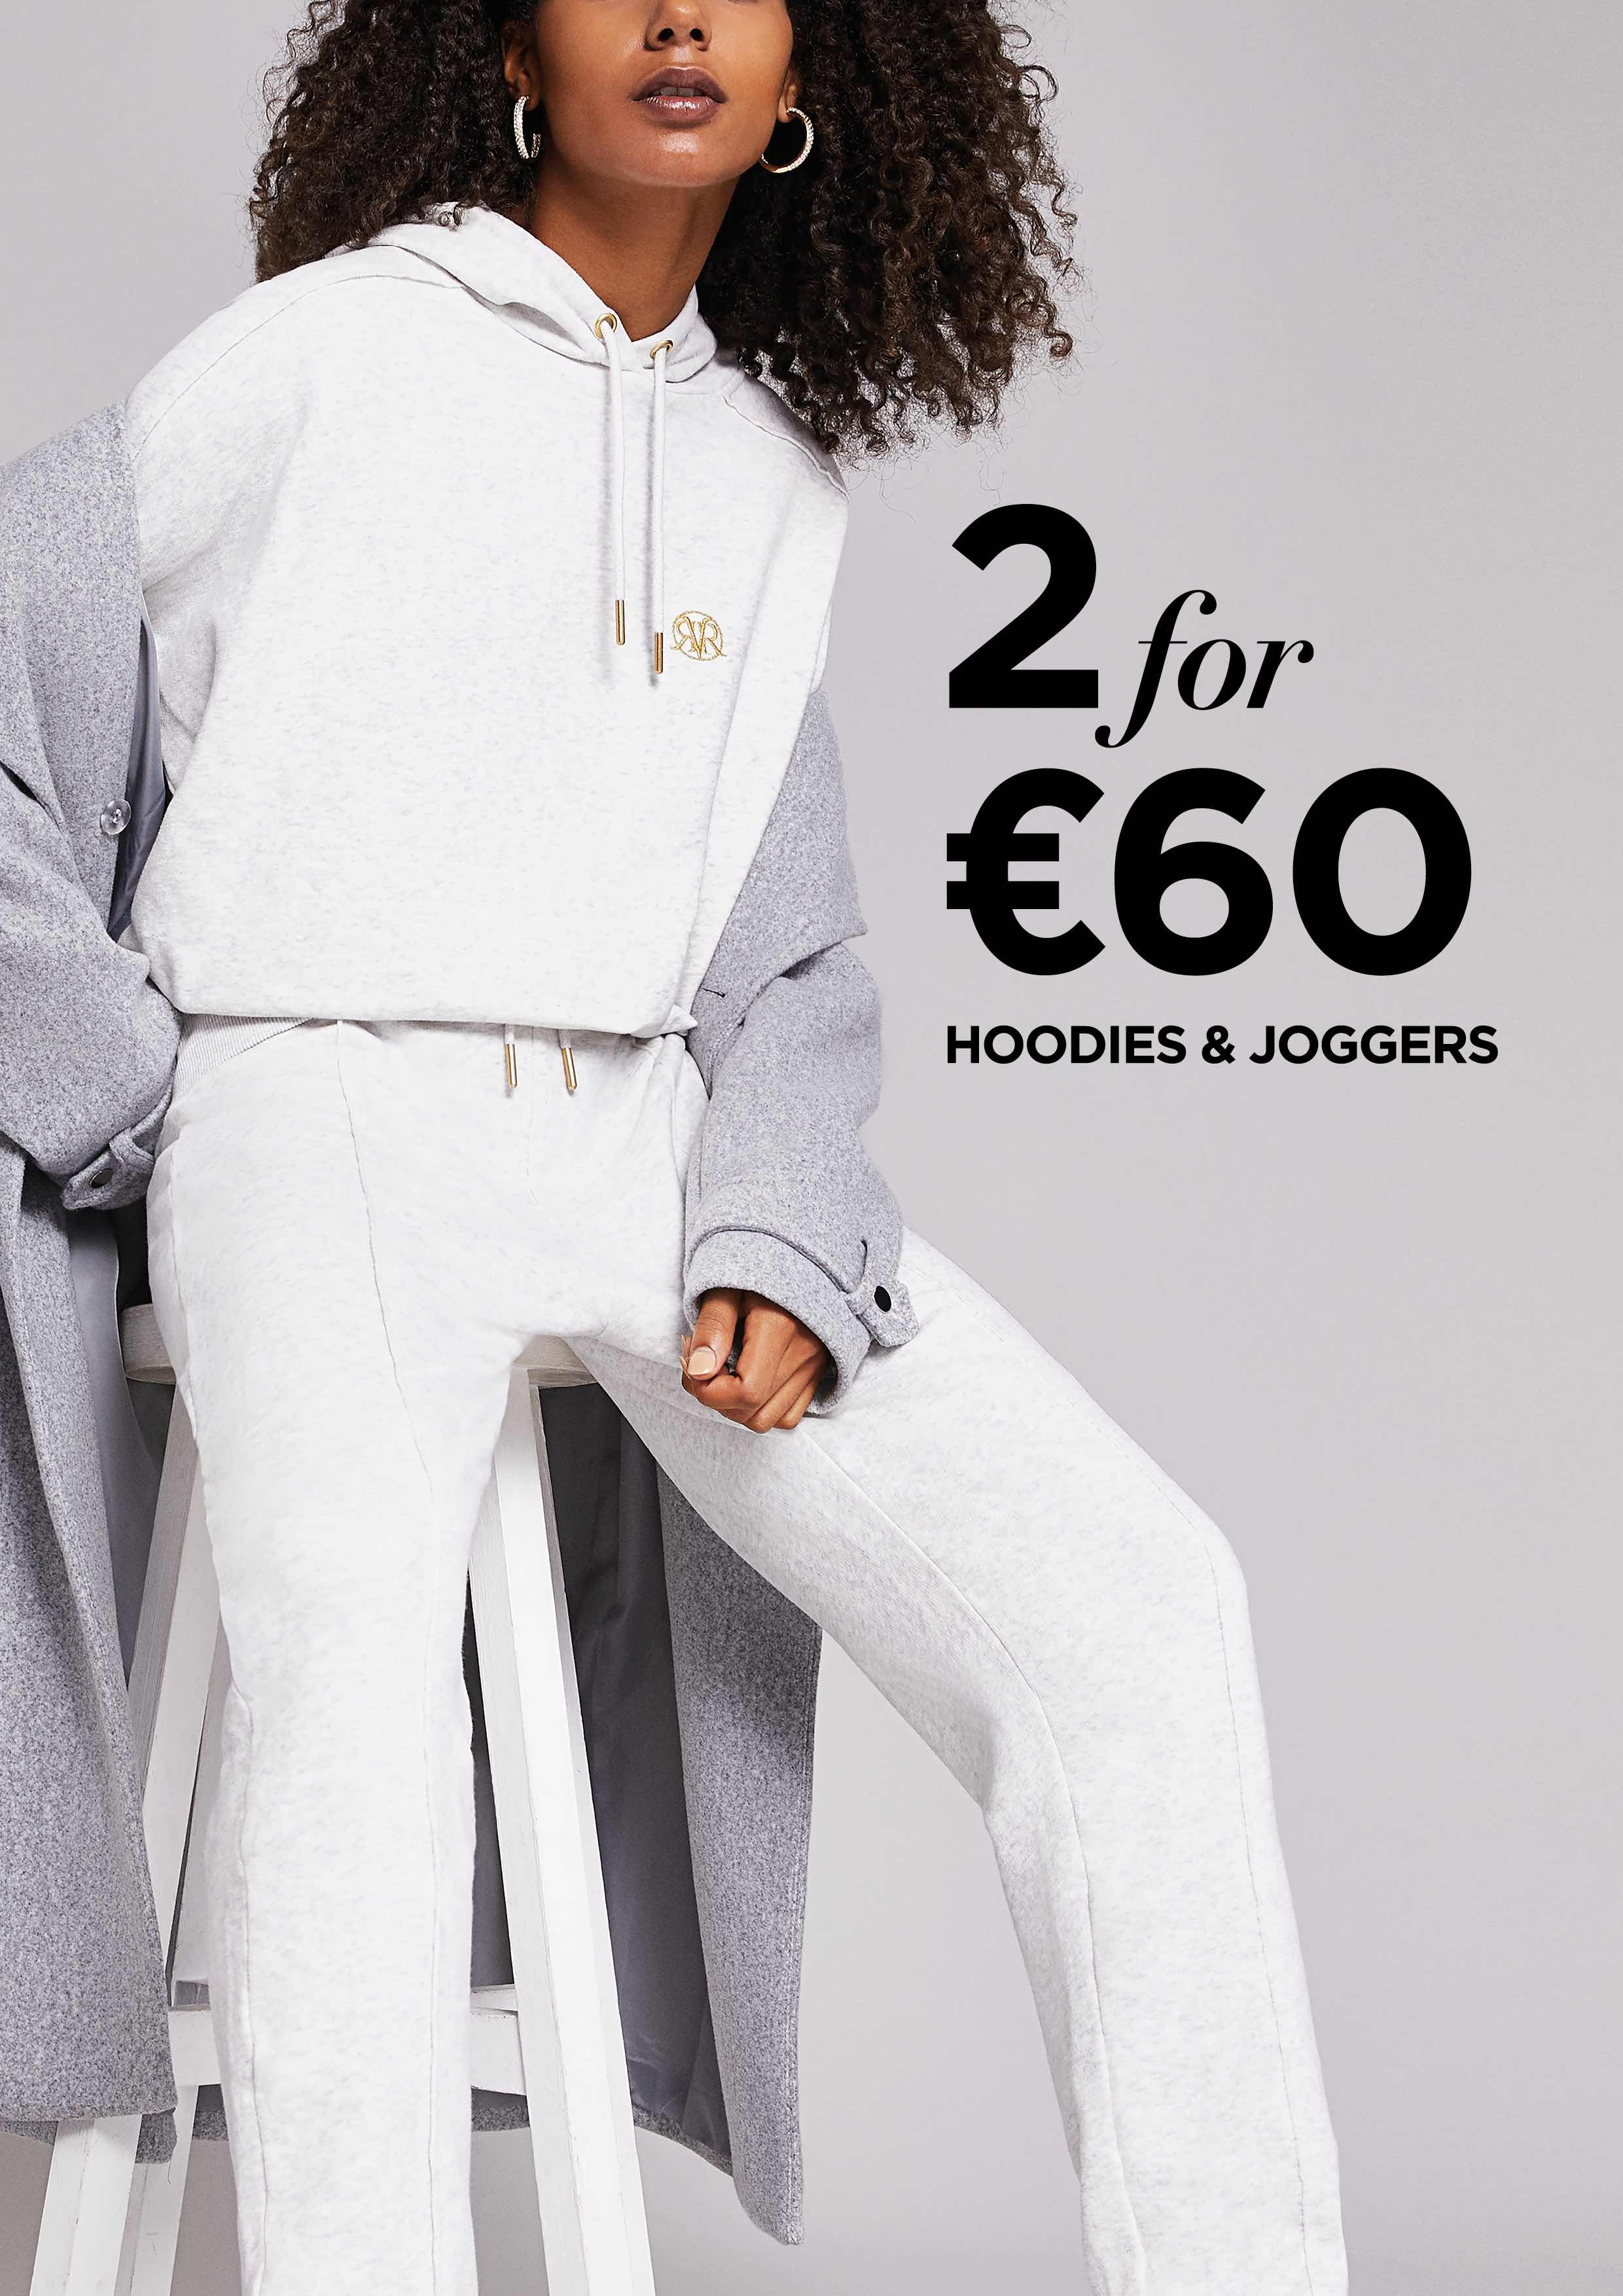 2 for €60 on selected Hoodies & Joggers at River Island!